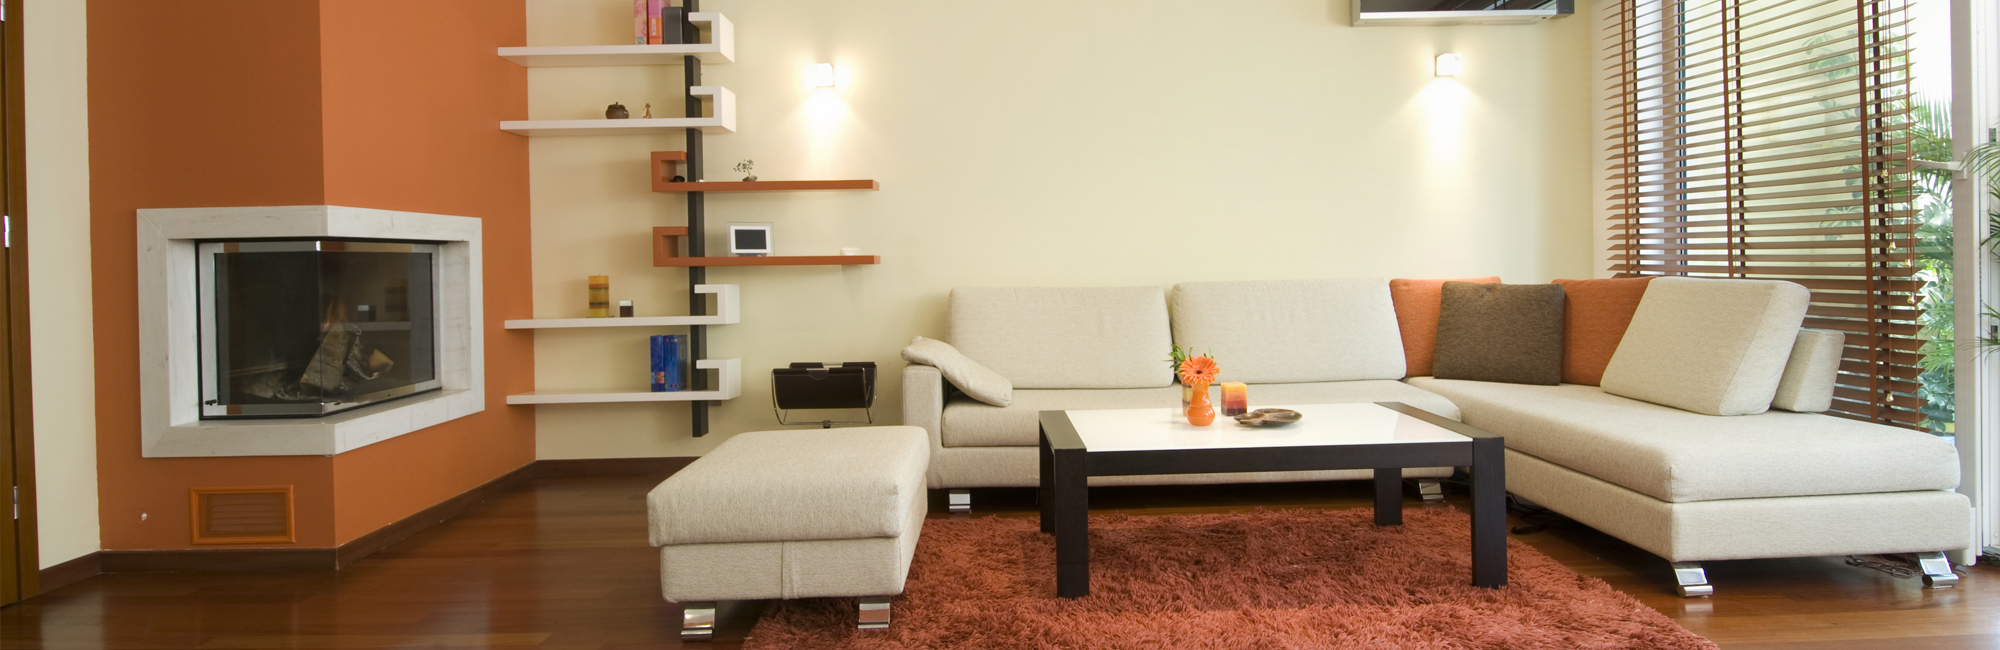 visit us for modern and stylish furniture